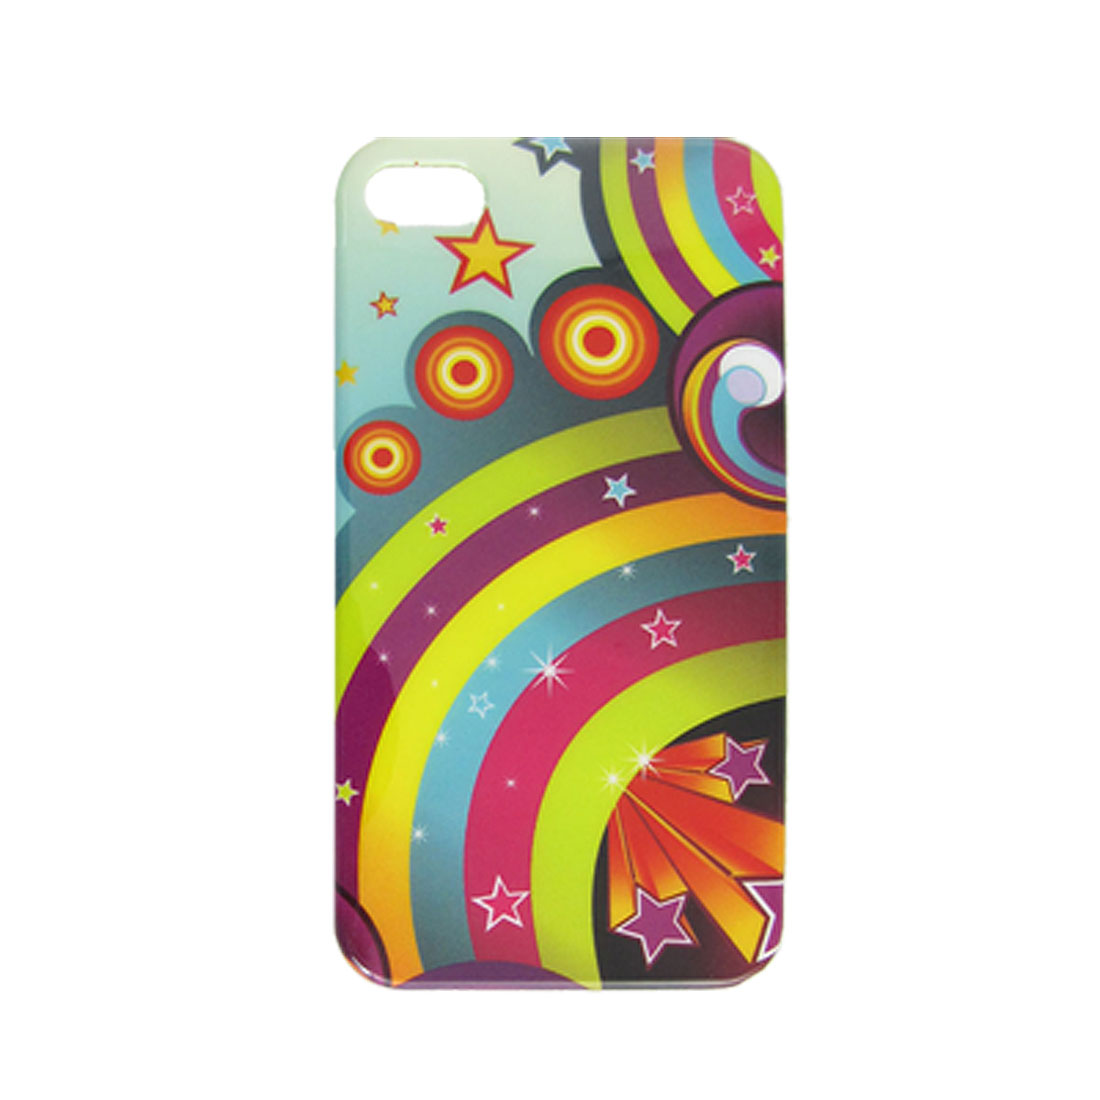 Rainbow Star Pattern Hard Plastic IMD Back Case for iPhone 4 4G